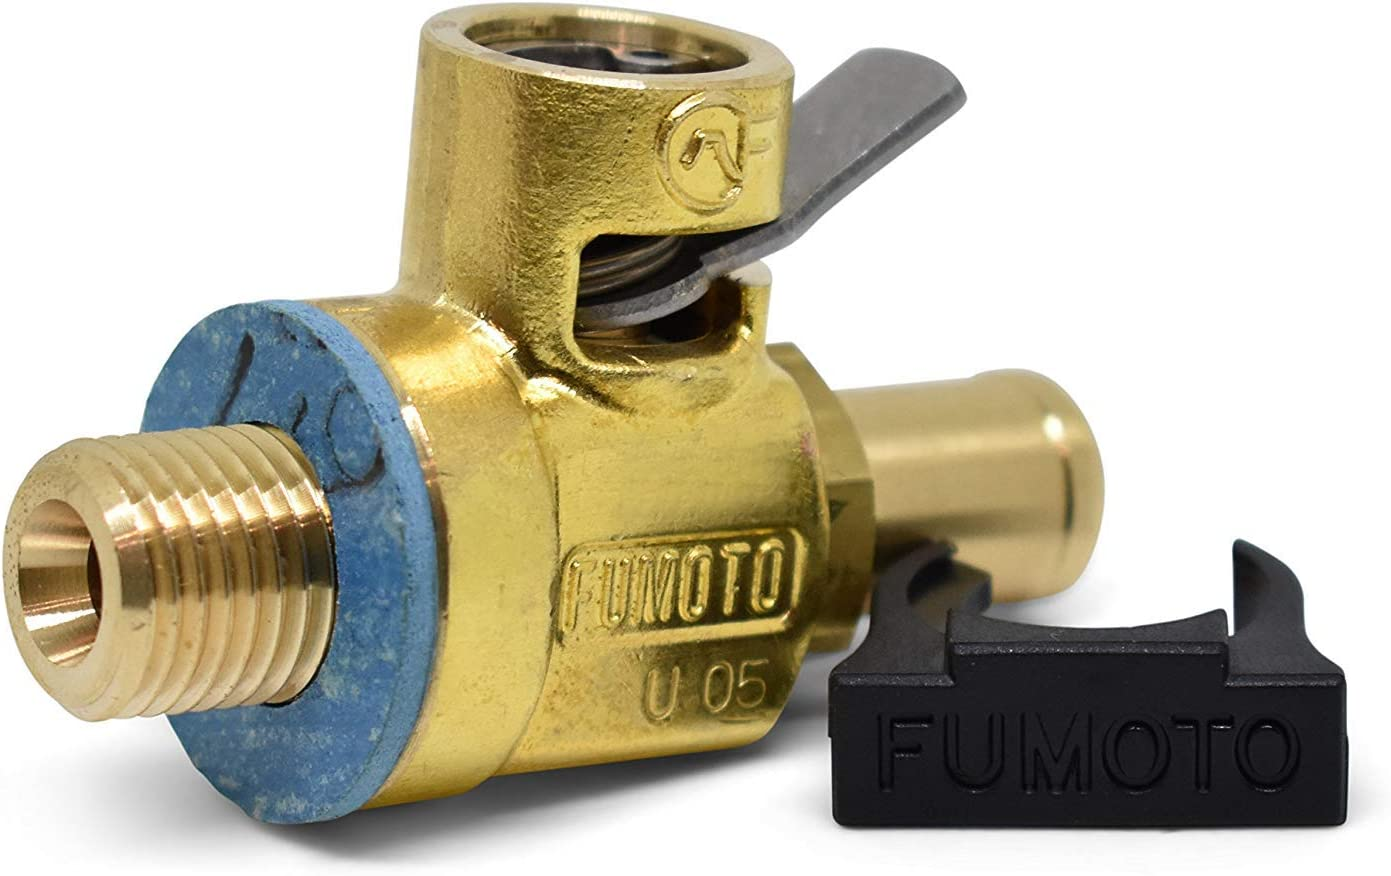 F137N with LC-10 F-Series Large Body FUMOTO Valve with Long Nipple and LC-10 Lever Clip for M12-1.75